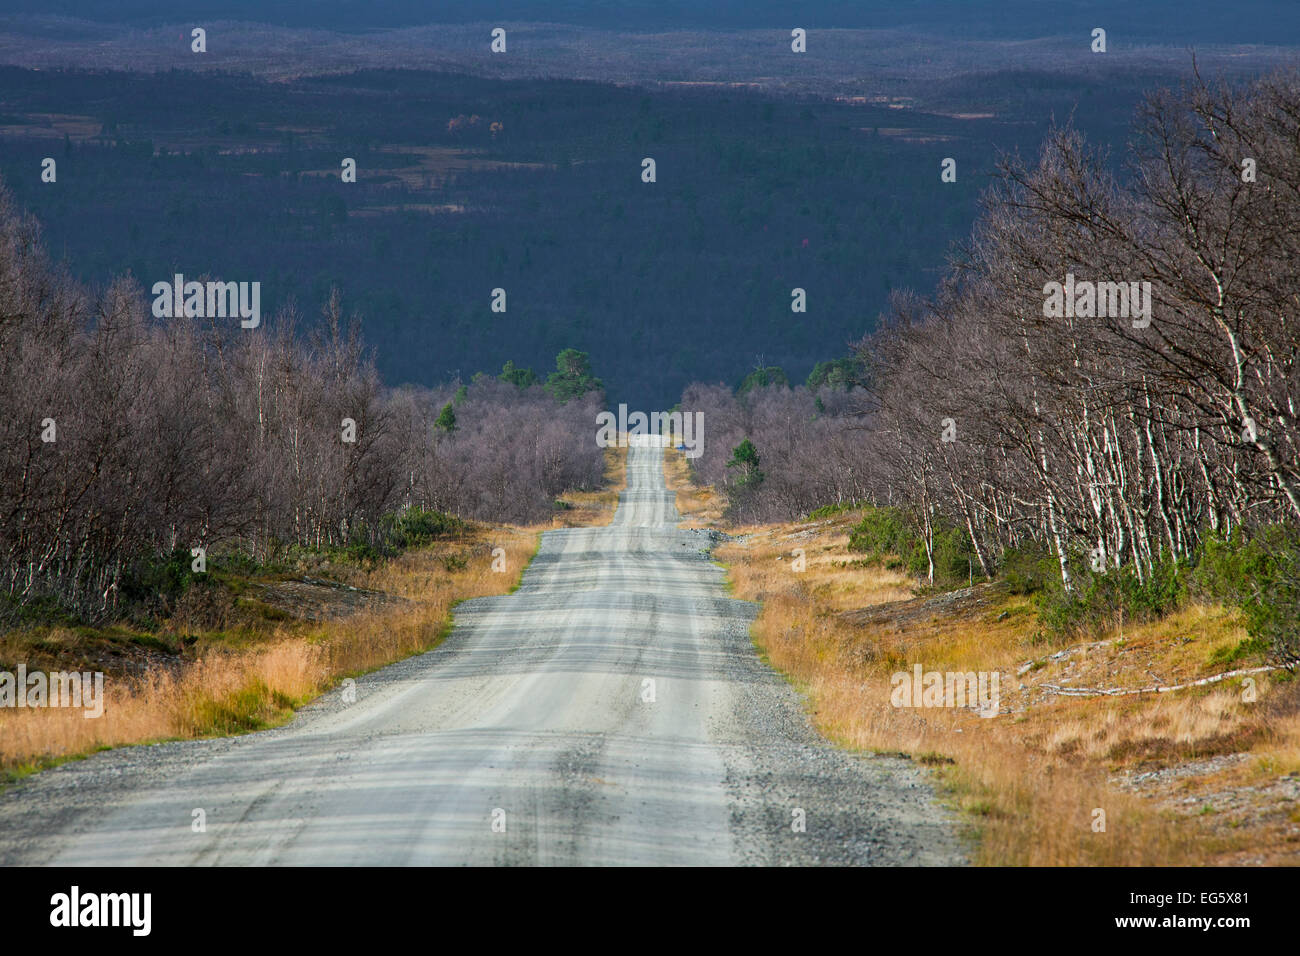 Desolate dirt road through birch forest in autumn, Jämtland / Jaemtland, Sweden - Stock Image